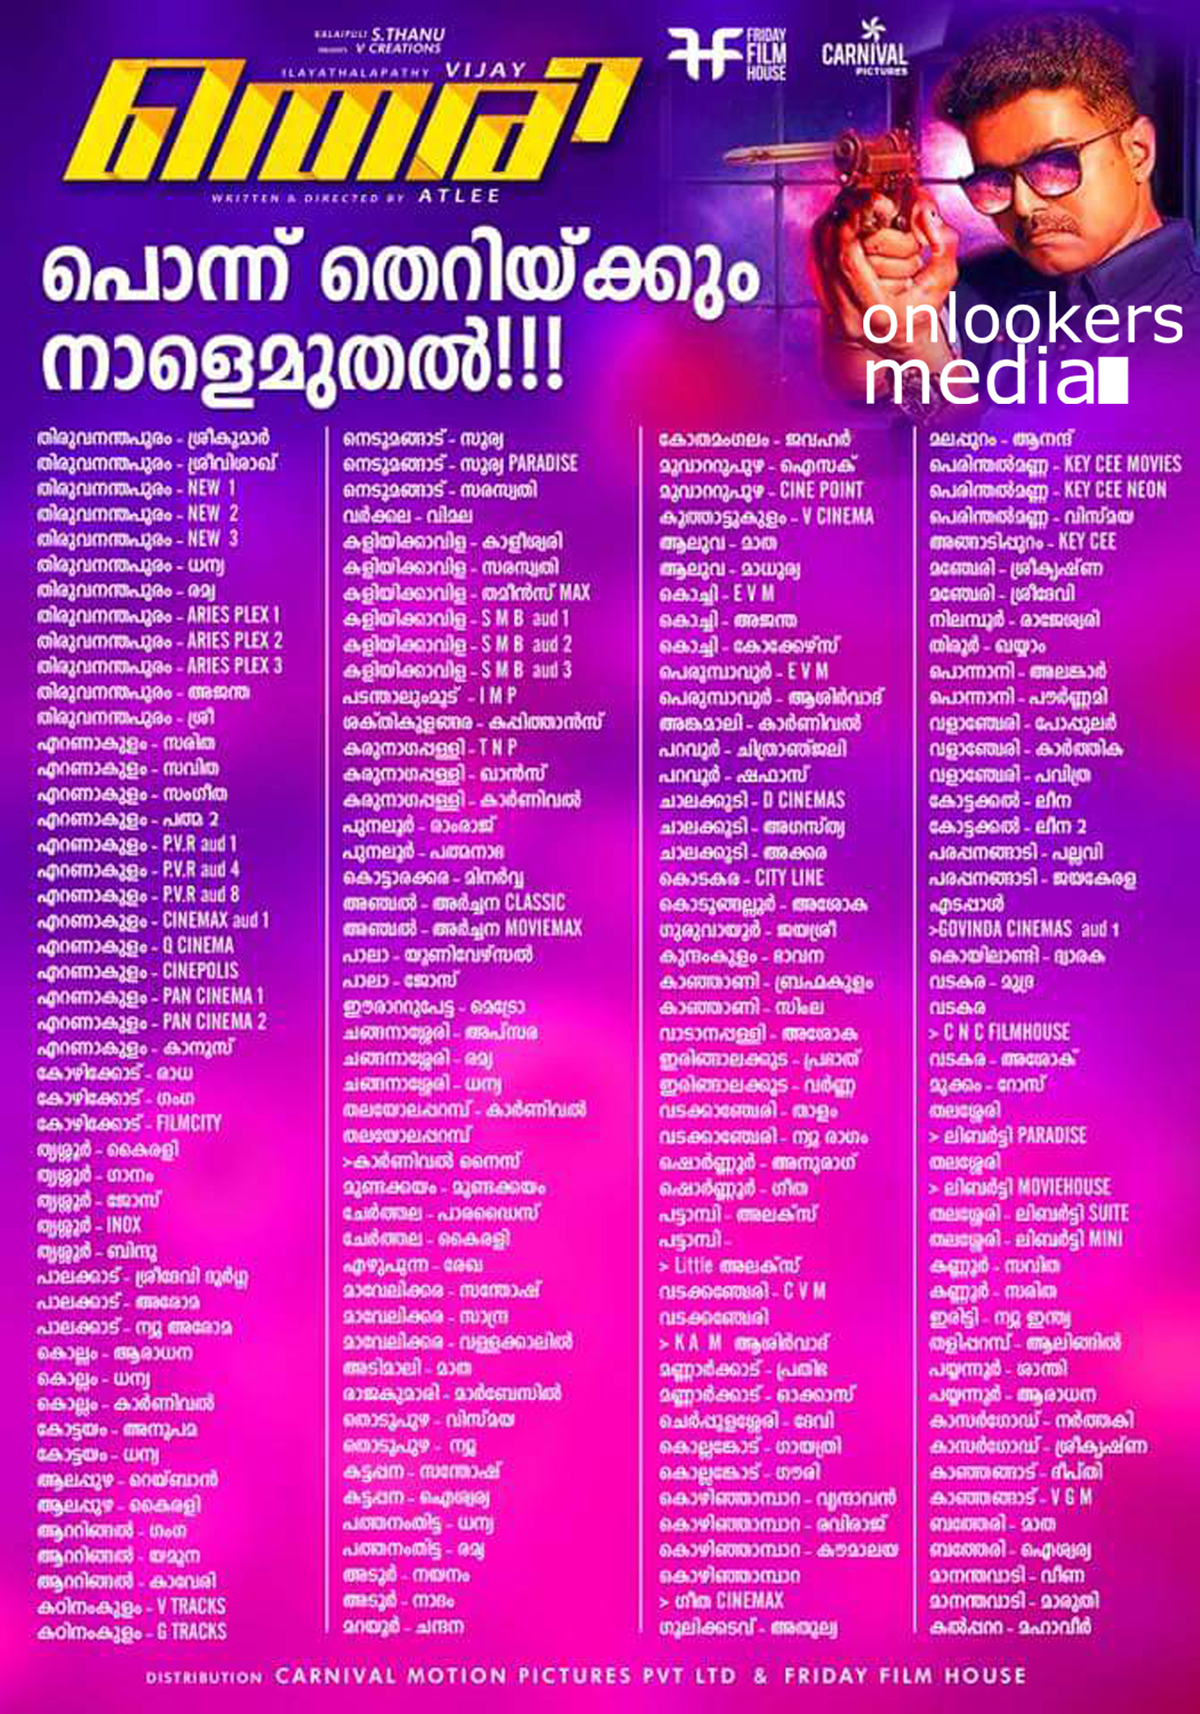 http://onlookersmedia.in/wp-content/uploads/2016/01/Theri-kerala-theater-list-Vijay-Samantha-Amy-Jackson.jpg